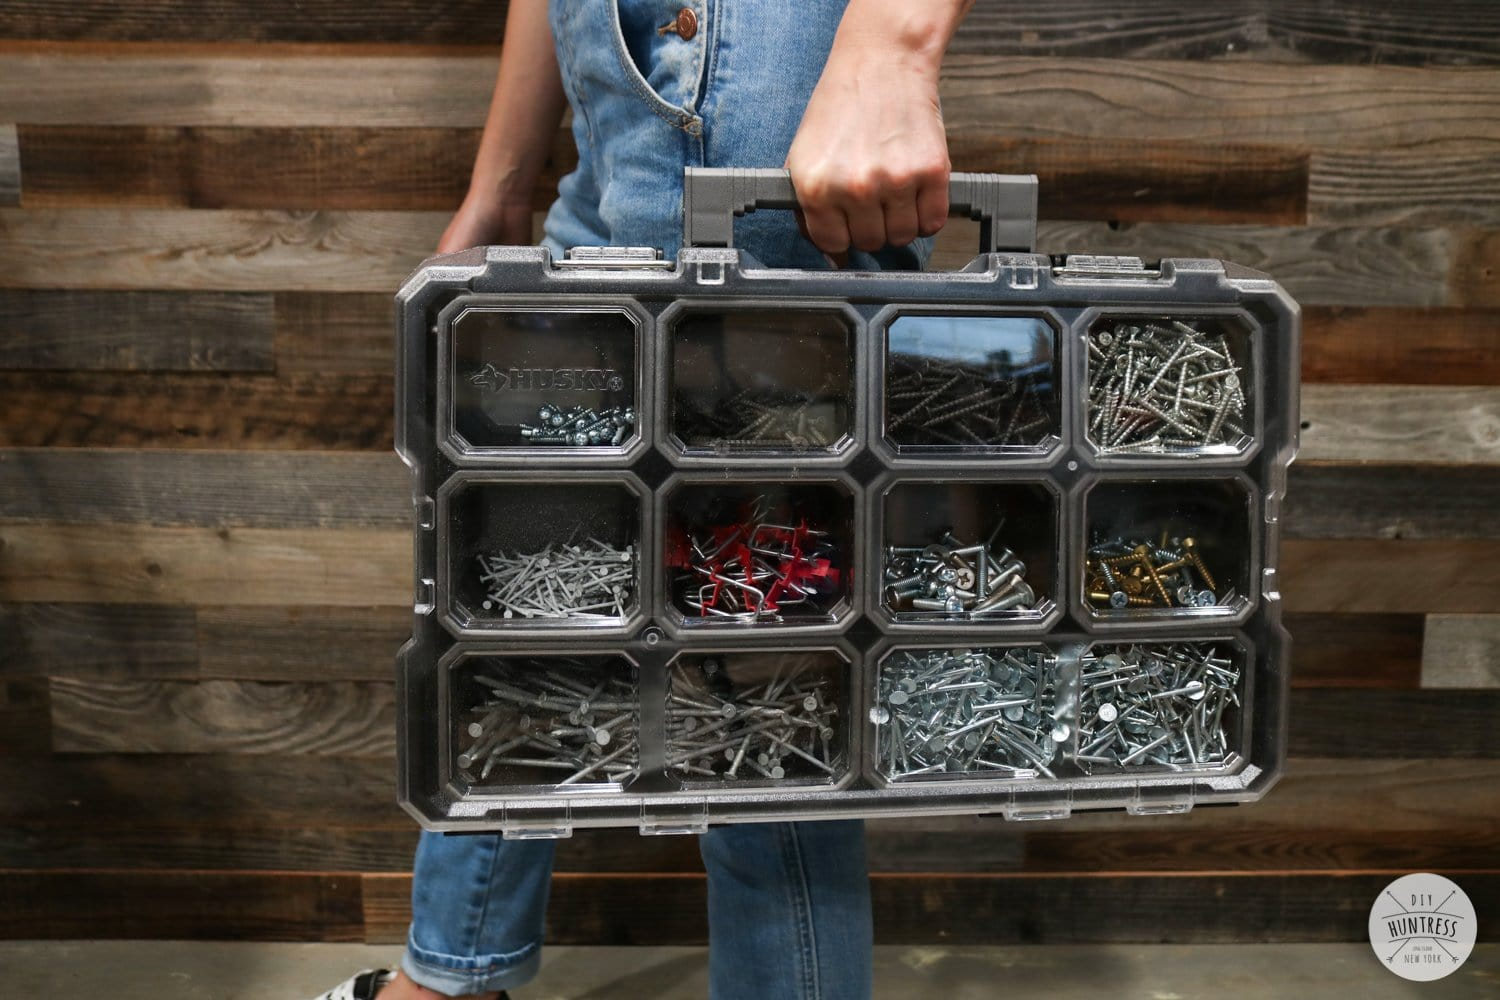 husky small parts tool organizer